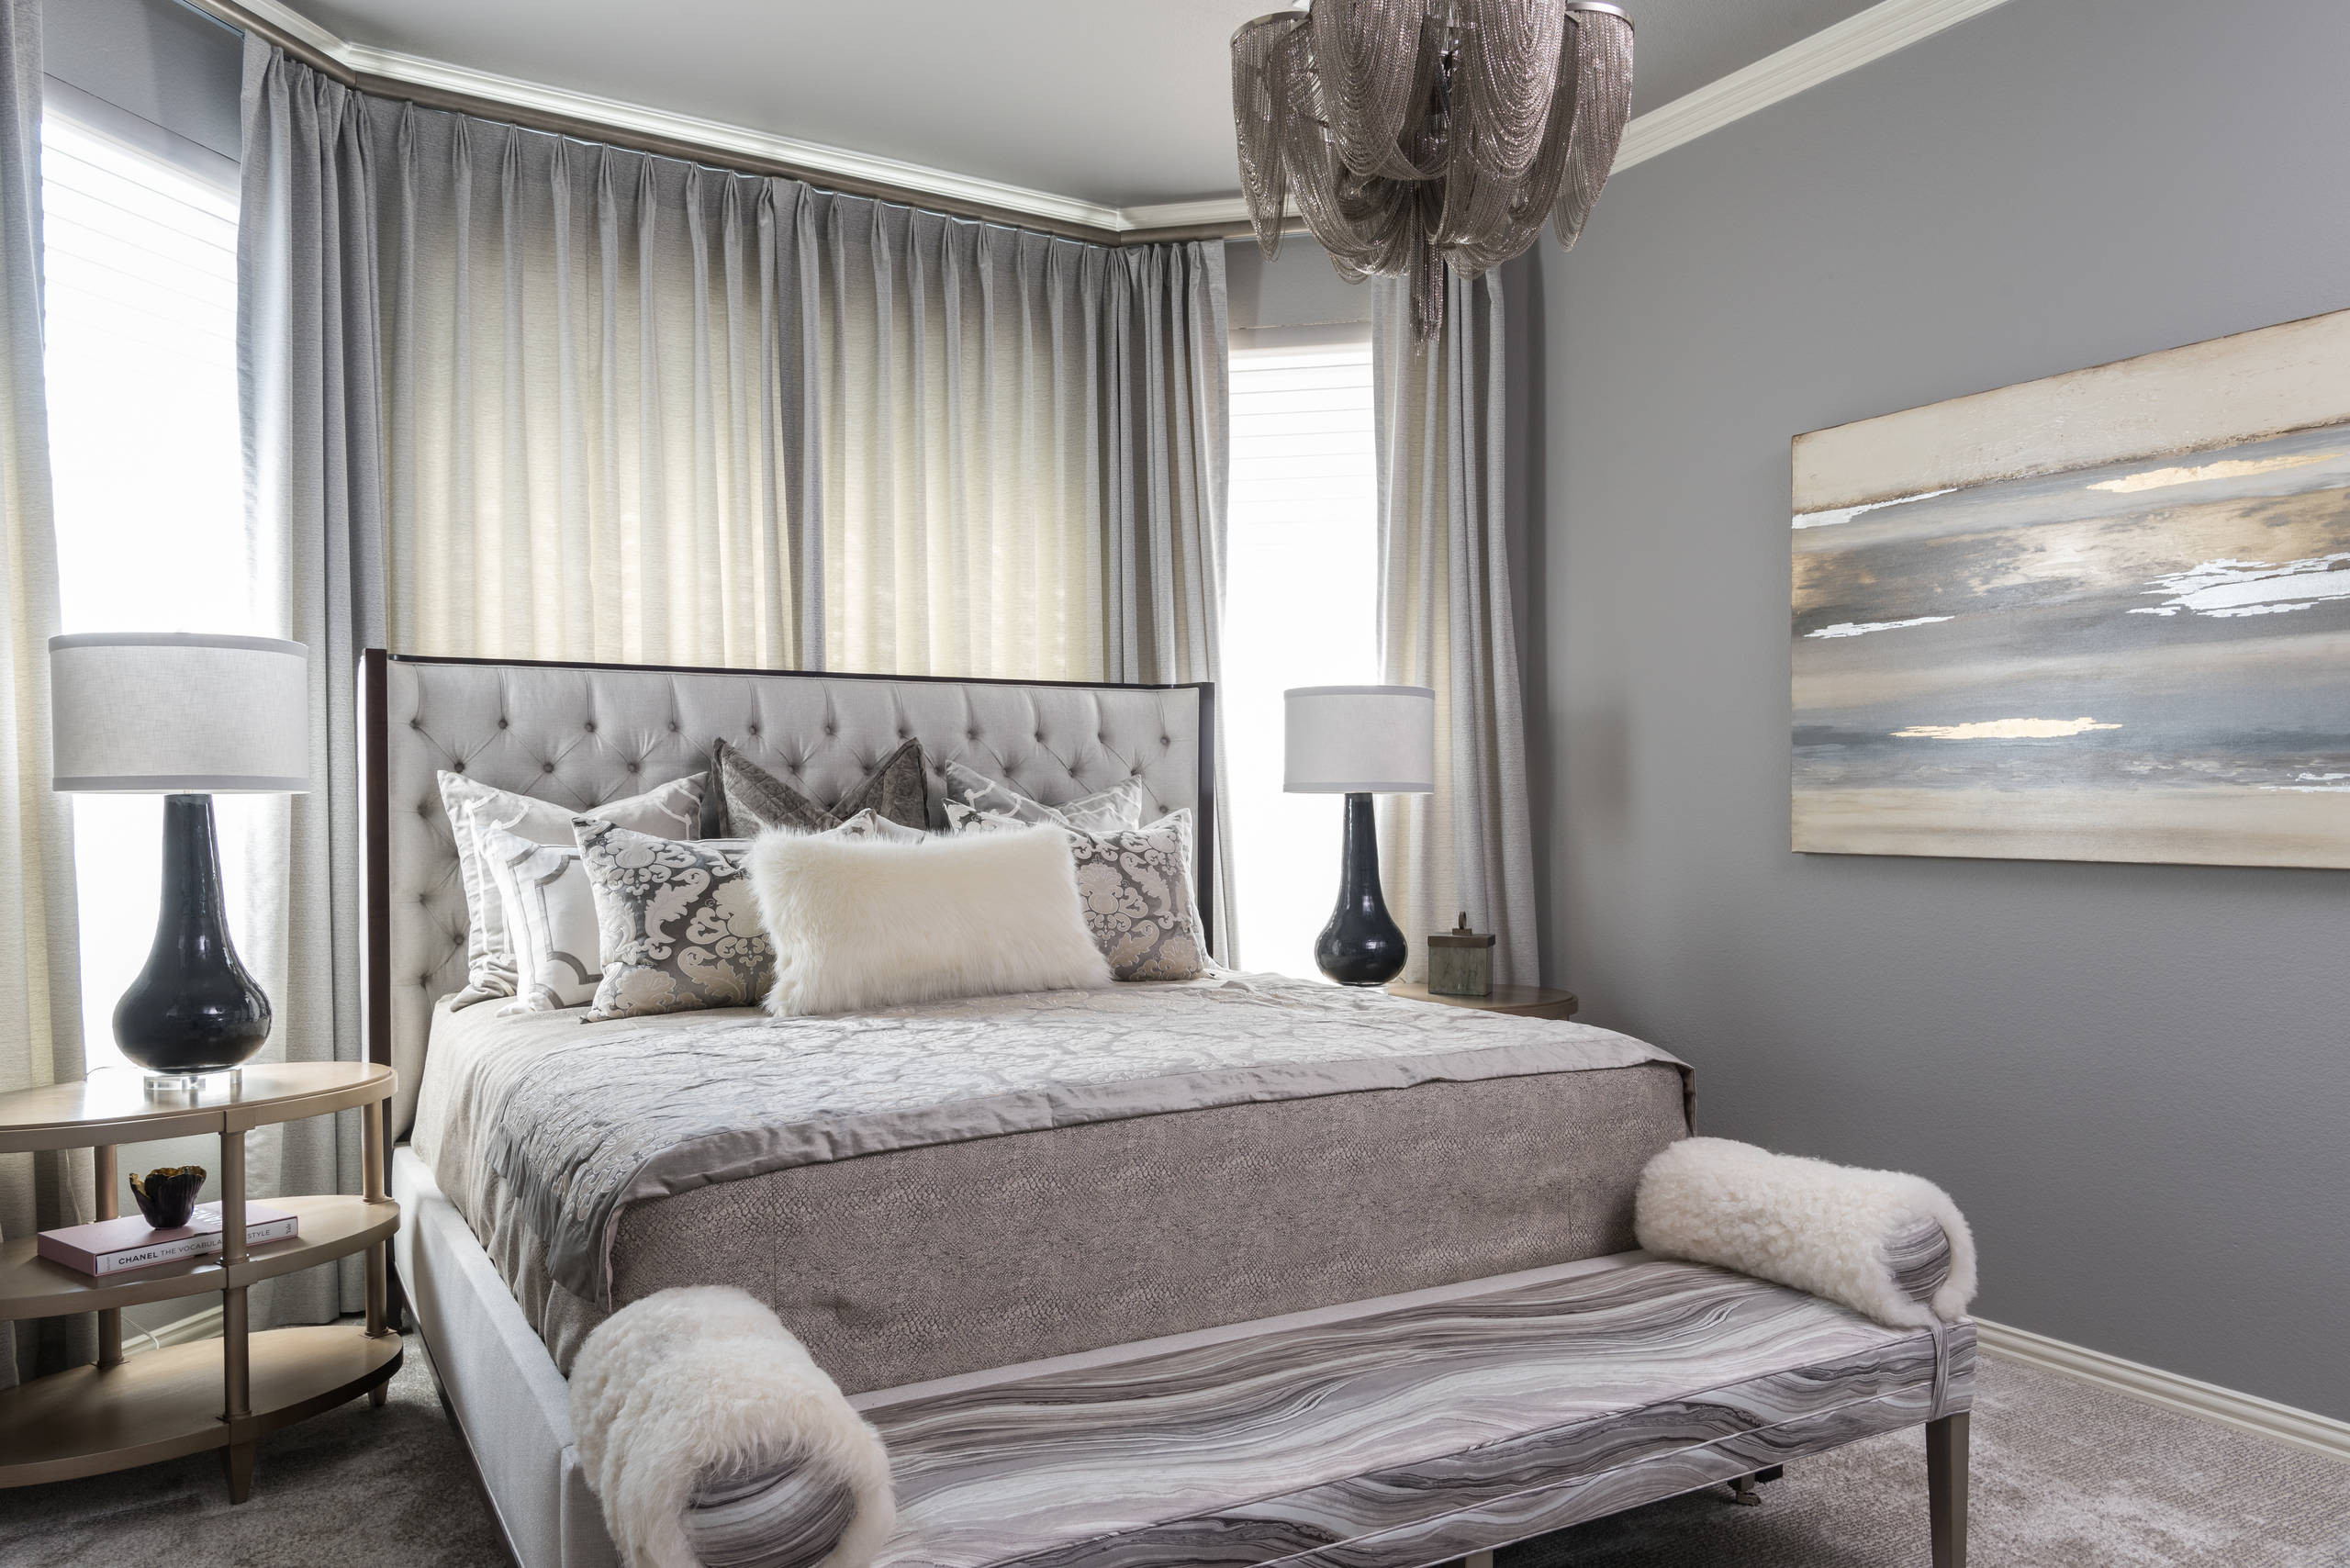 Best ideas about Bedroom Color Schemes . Save or Pin 19 Blissful Bedroom Colour Scheme Ideas The LuxPad Now.